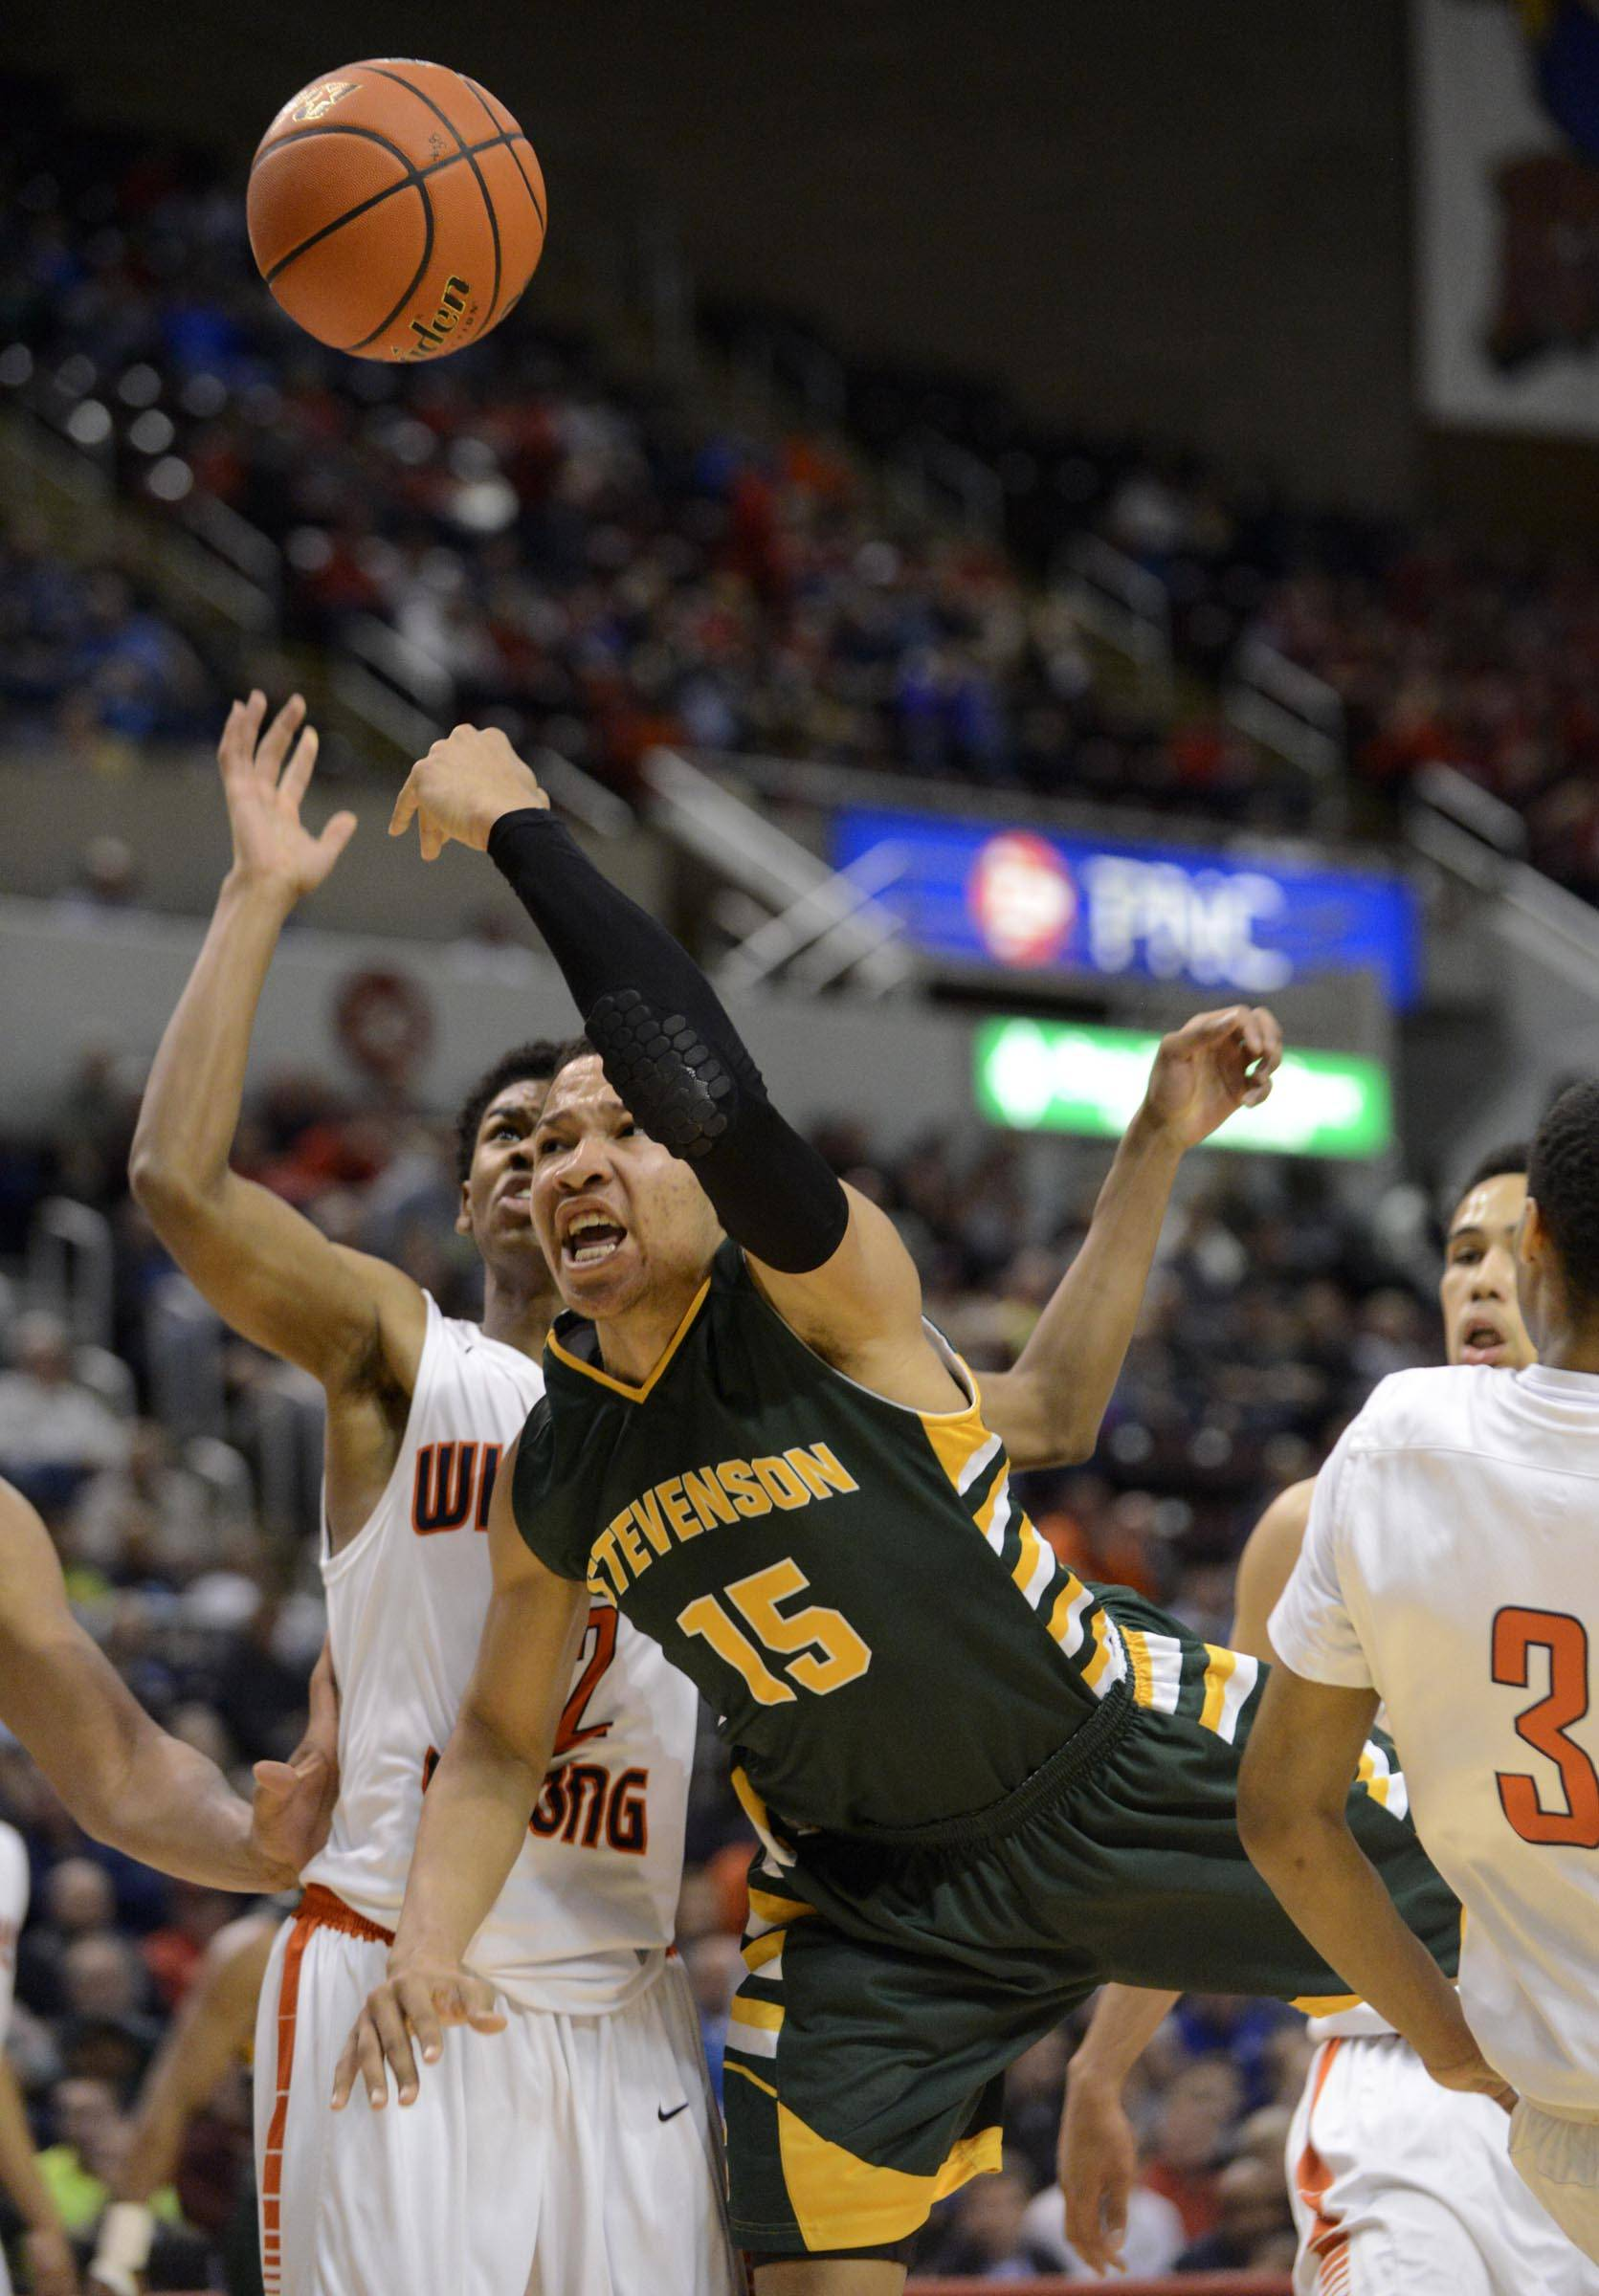 Stevenson's Jalen Brunson tosses up the ball as he is fouled by Whitney Young's Erwin Henry in the Class 4A state semifinals at Carver Arena in Peoria on Friday.